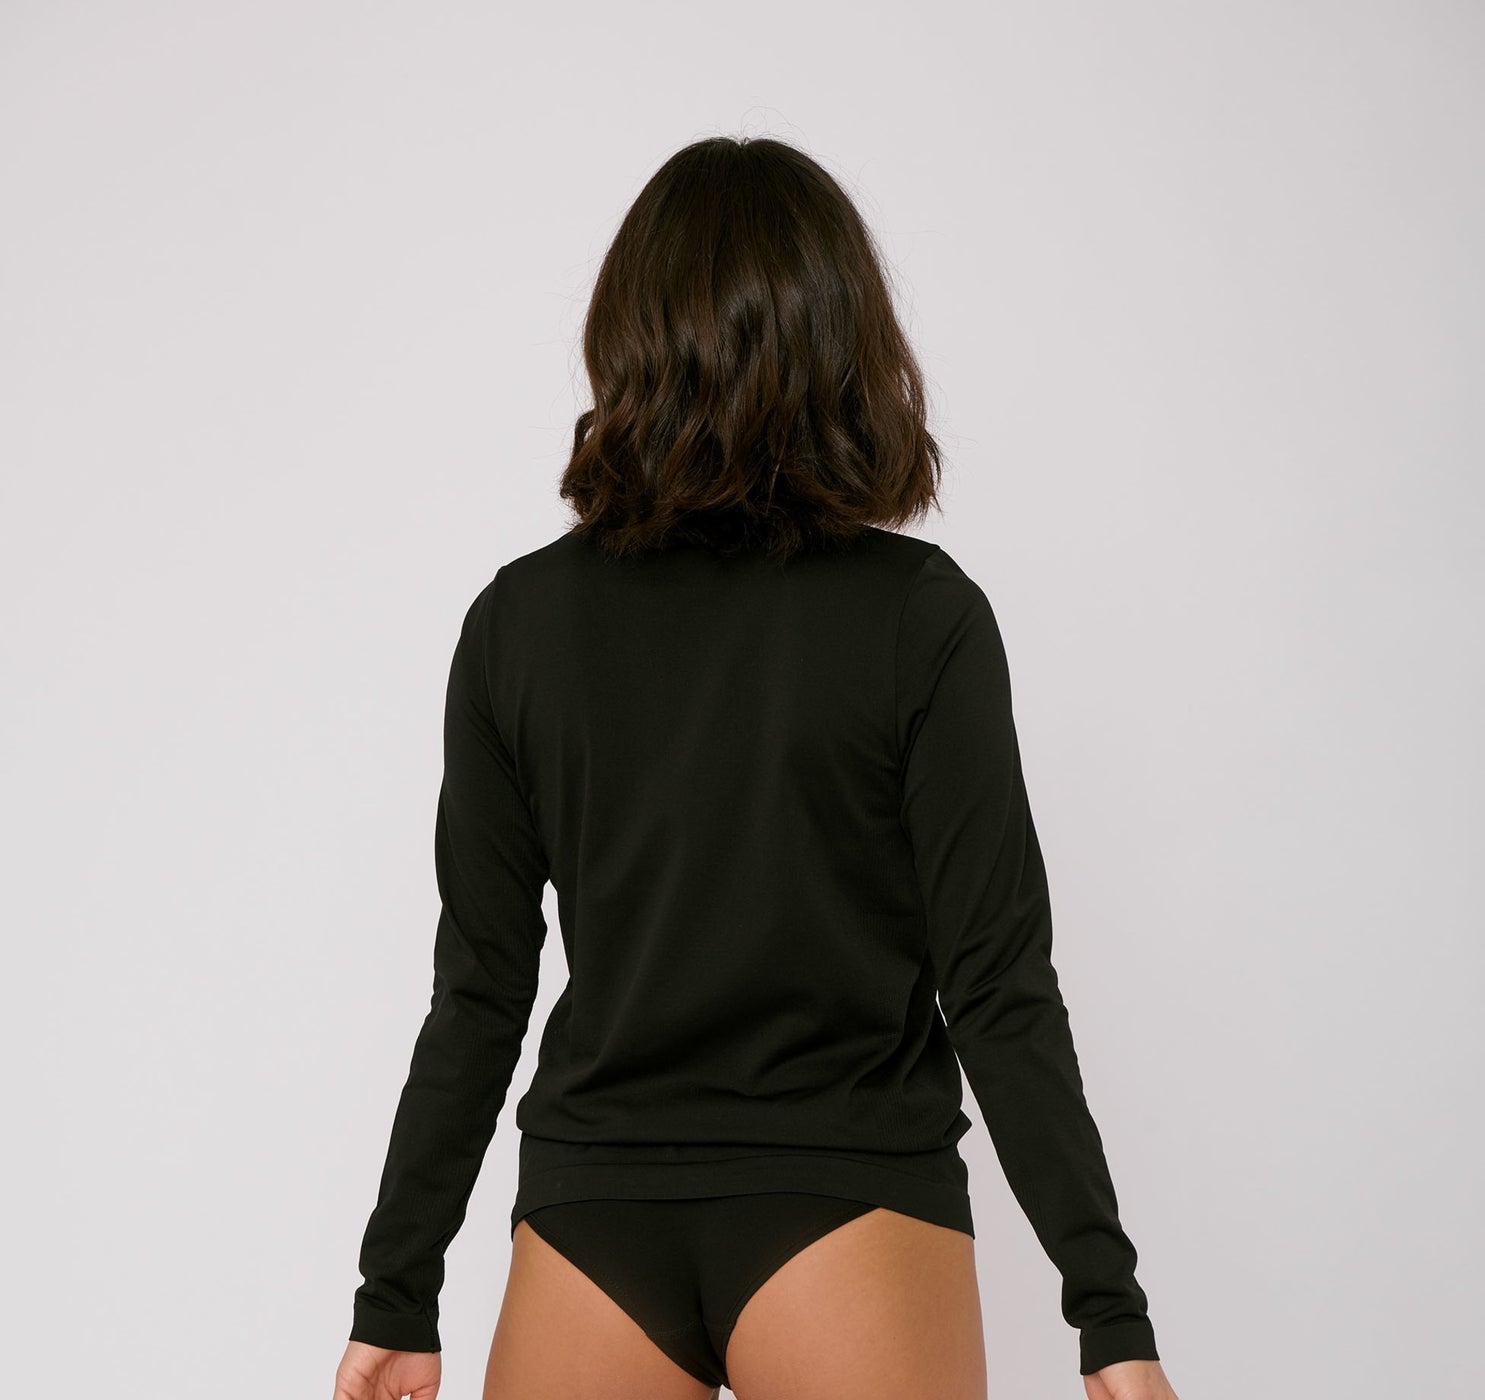 SilverTech™ Active Long-Sleeve 3-pack